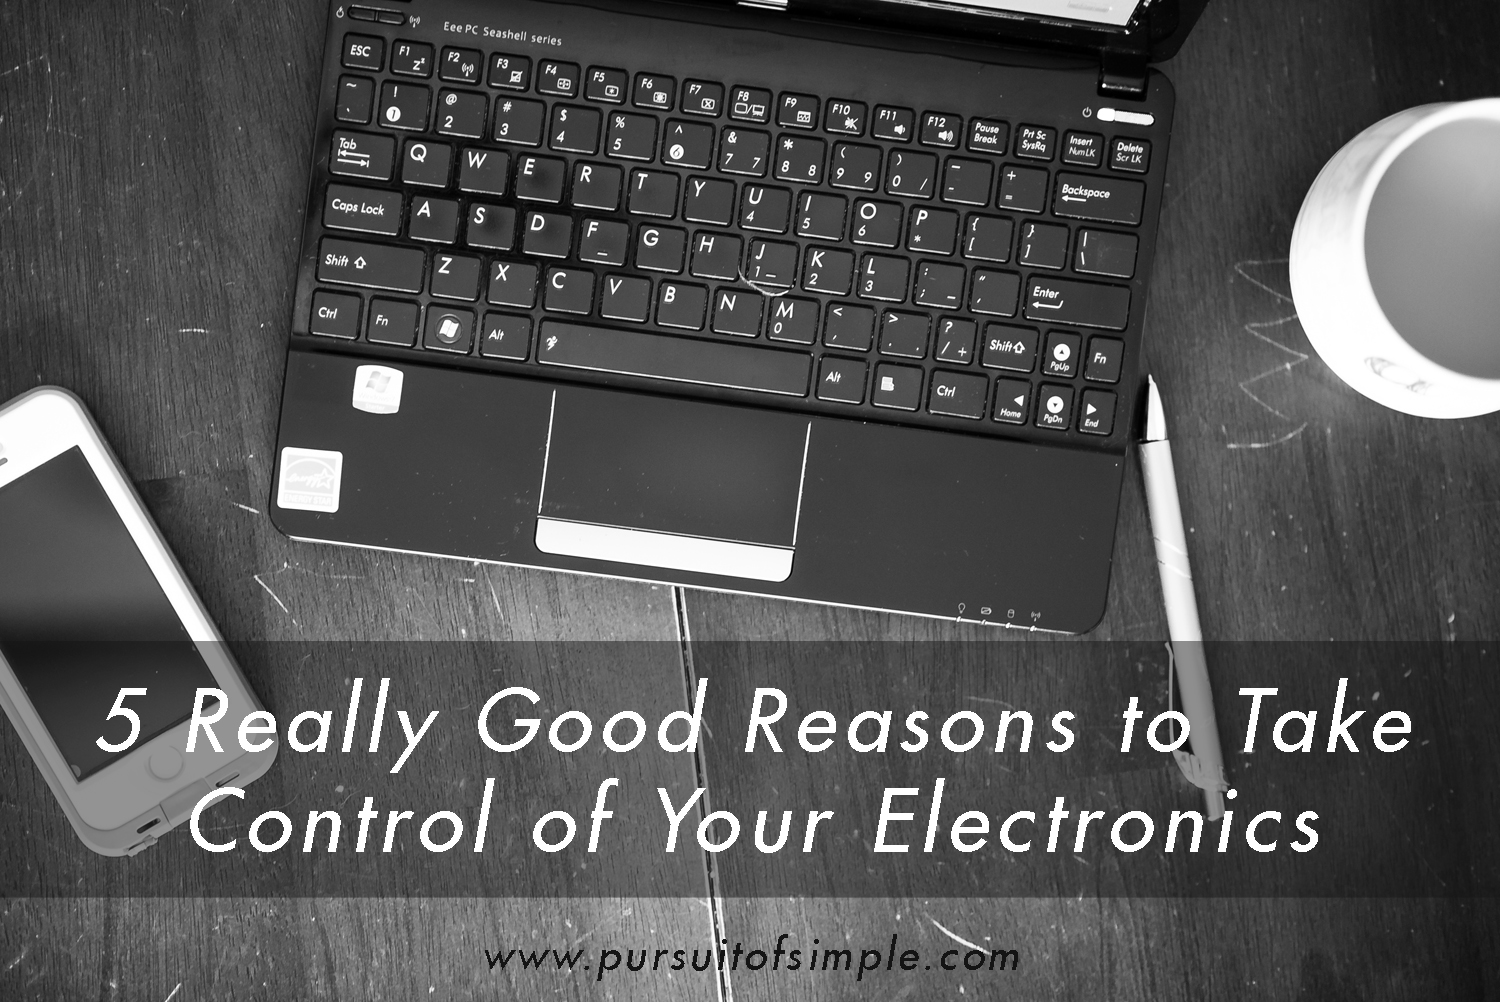 5 Really Good Reasons to Take Control of Your Electronics